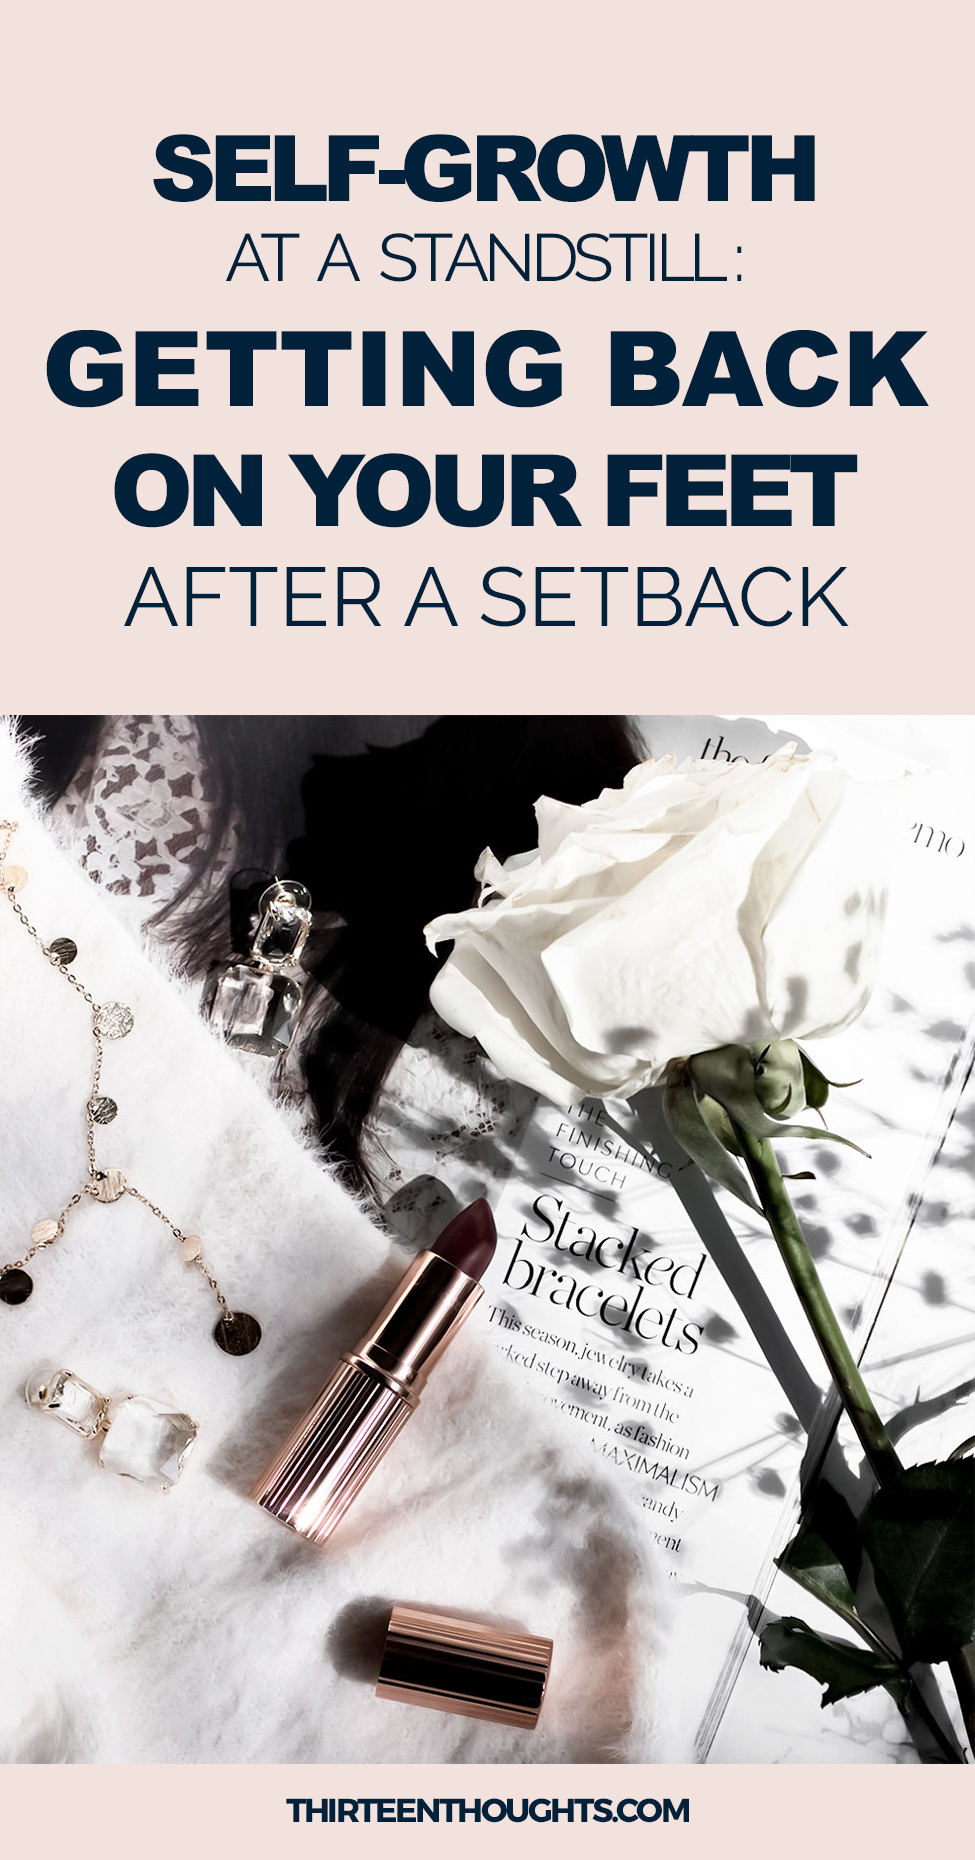 When Self-Growth is at a Standstill: Getting Back on Your Feet After a Setback